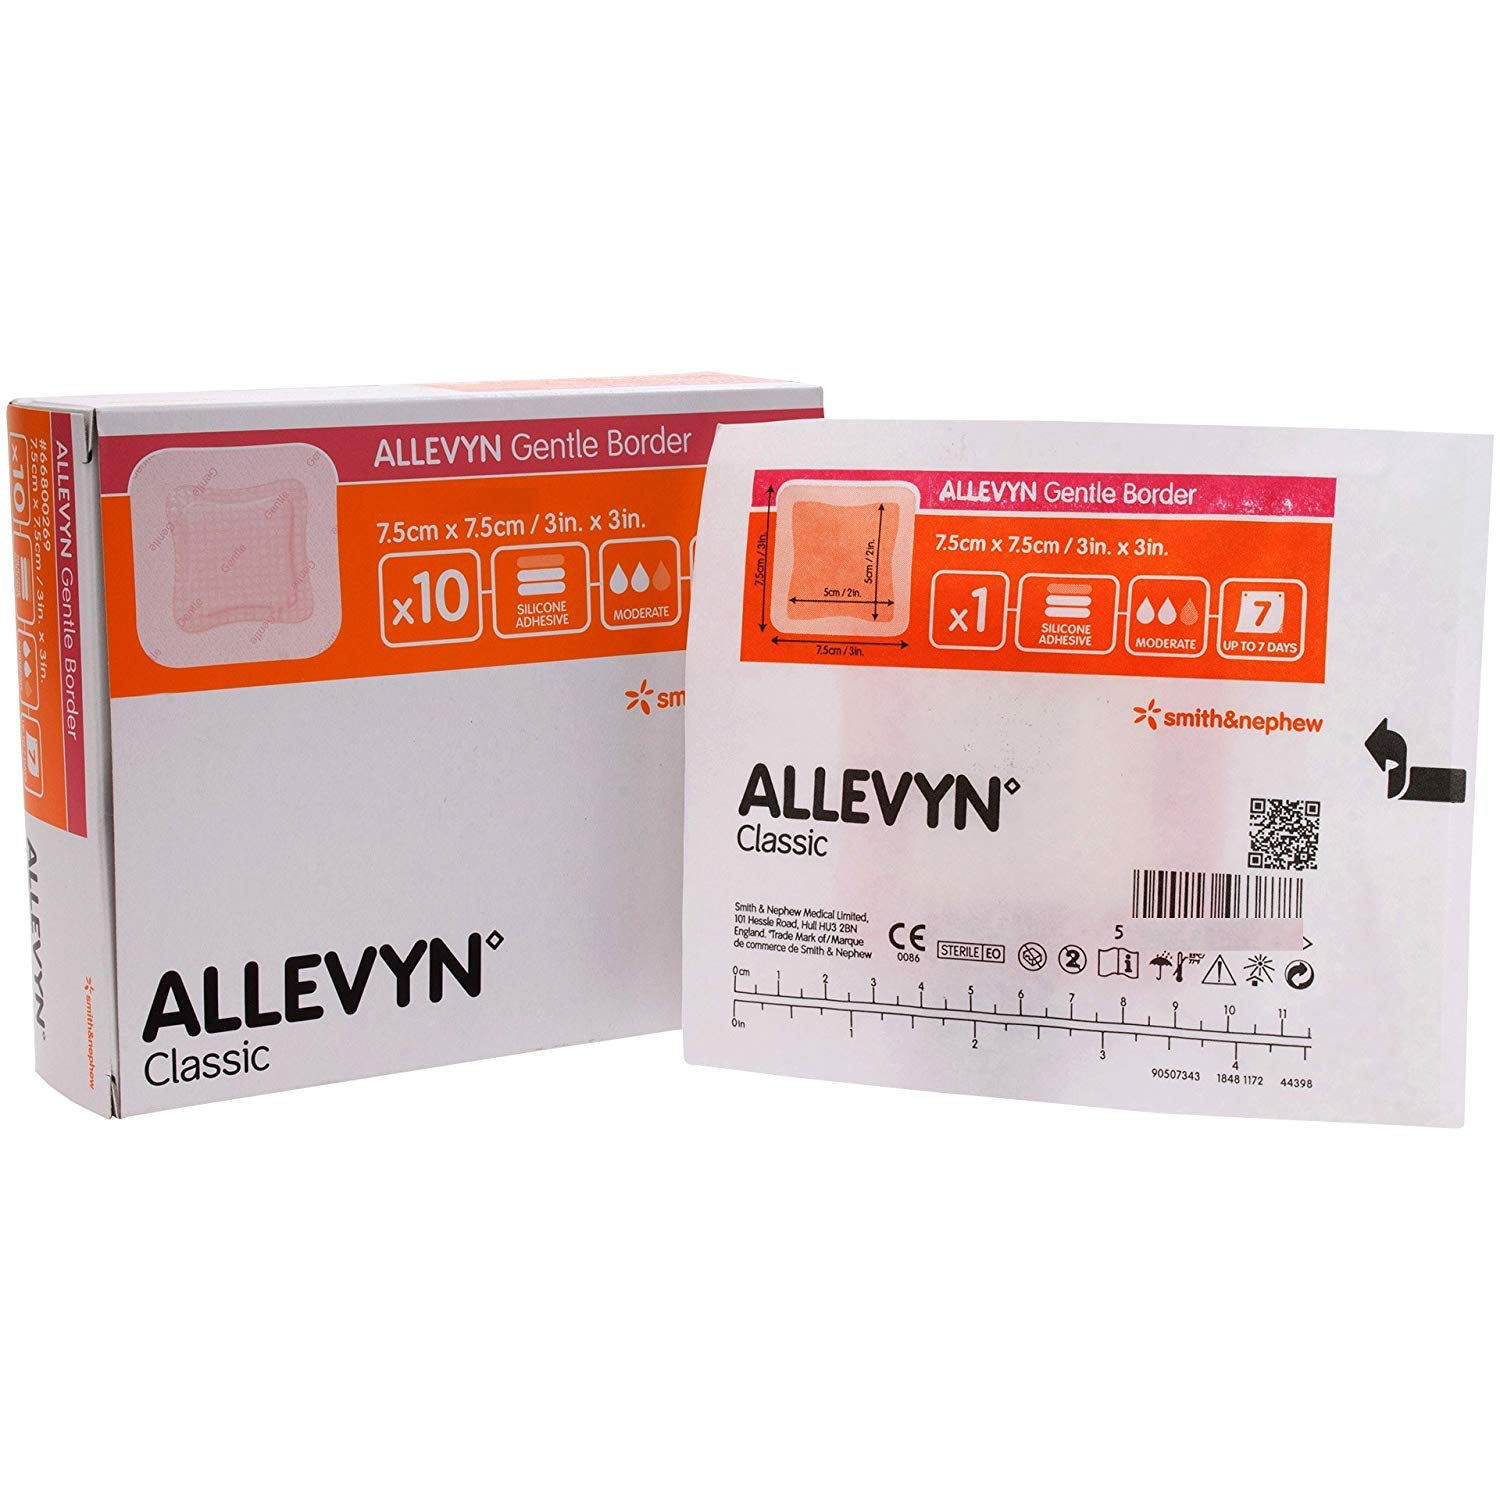 Allevyn Smith and Nephew 66800276 Gentle Border Dressing 3'' x 3'' - Box of 10 (3 Pack - 10 Count/Box)